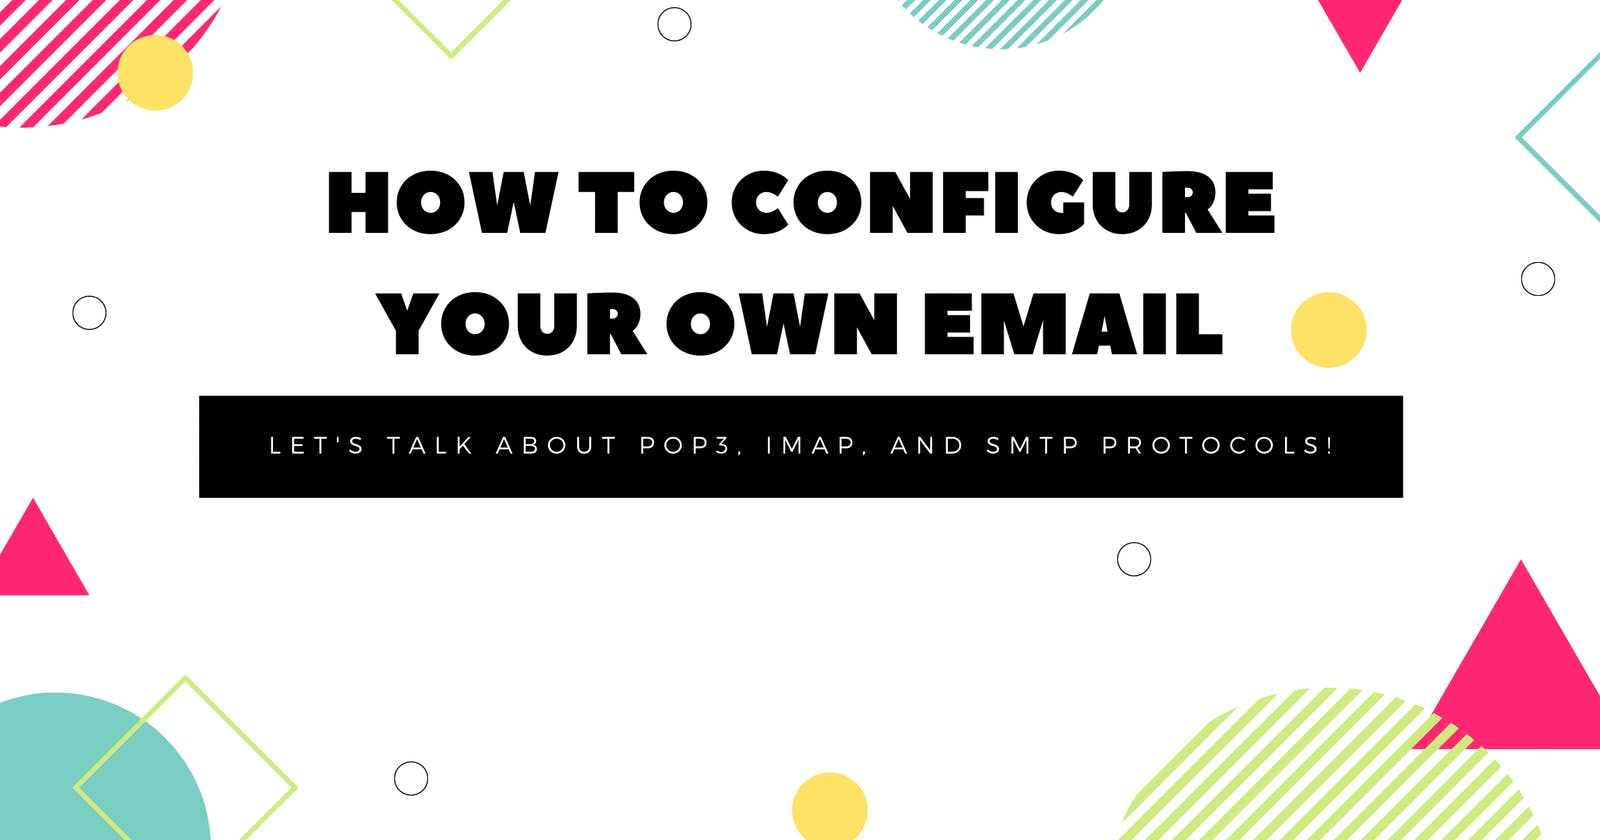 How to configure your own email